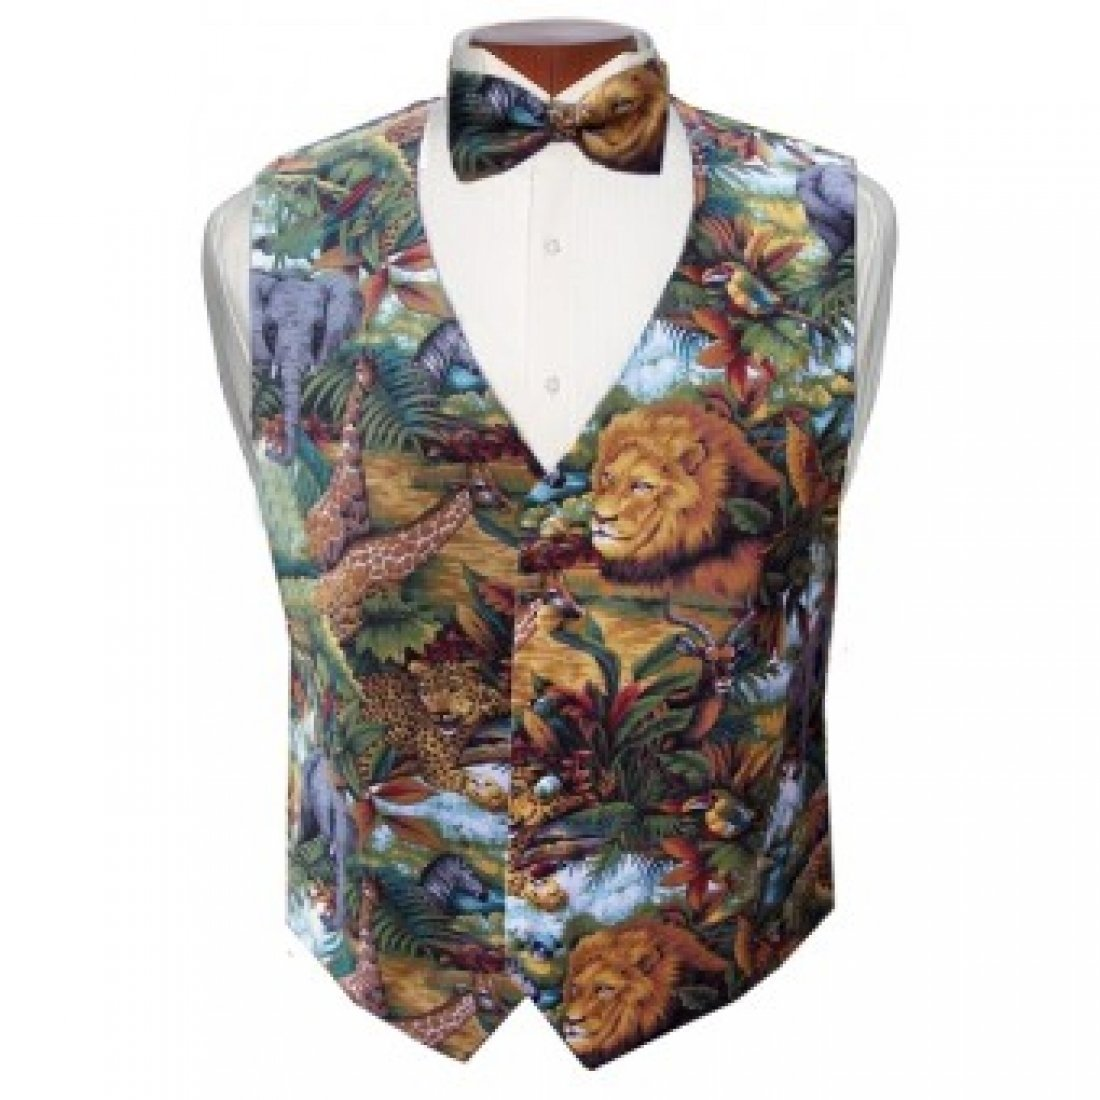 King of the Jungle Tuxedo Vest and Bow Tie Size XXLarge